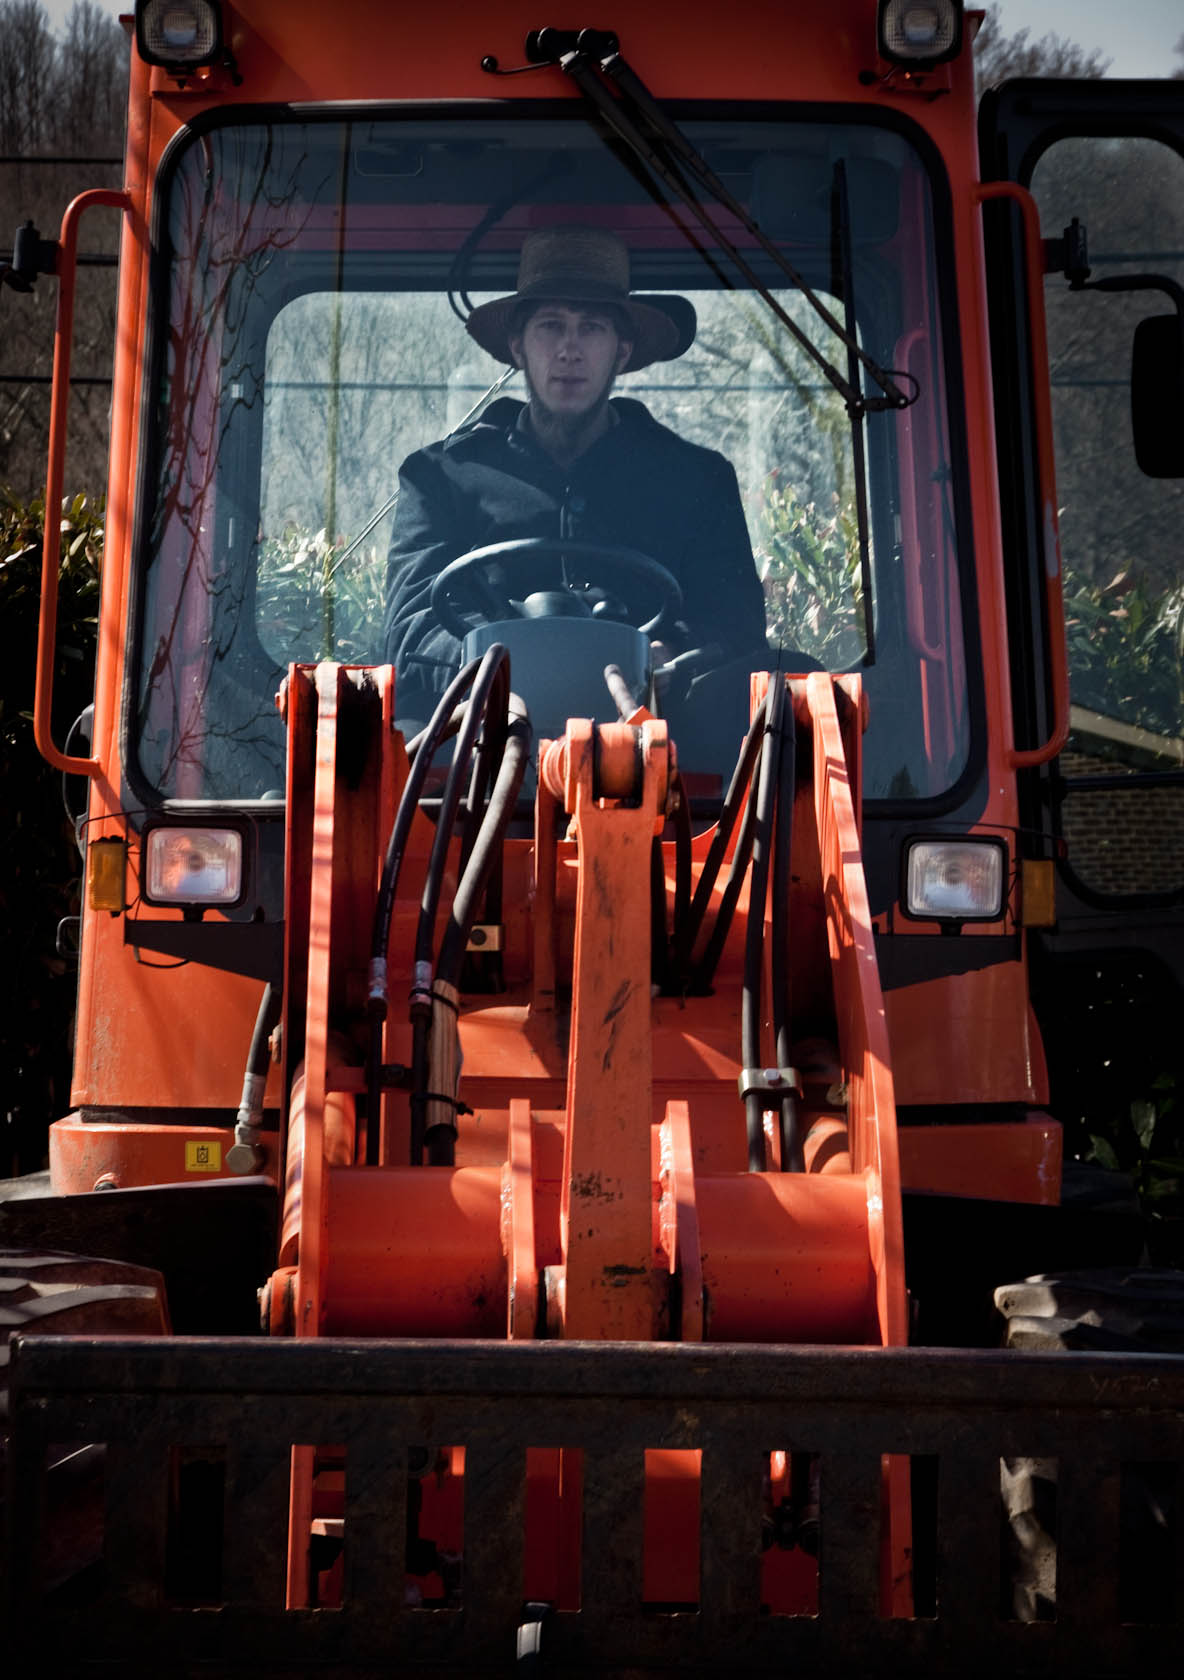 Man in red tractor